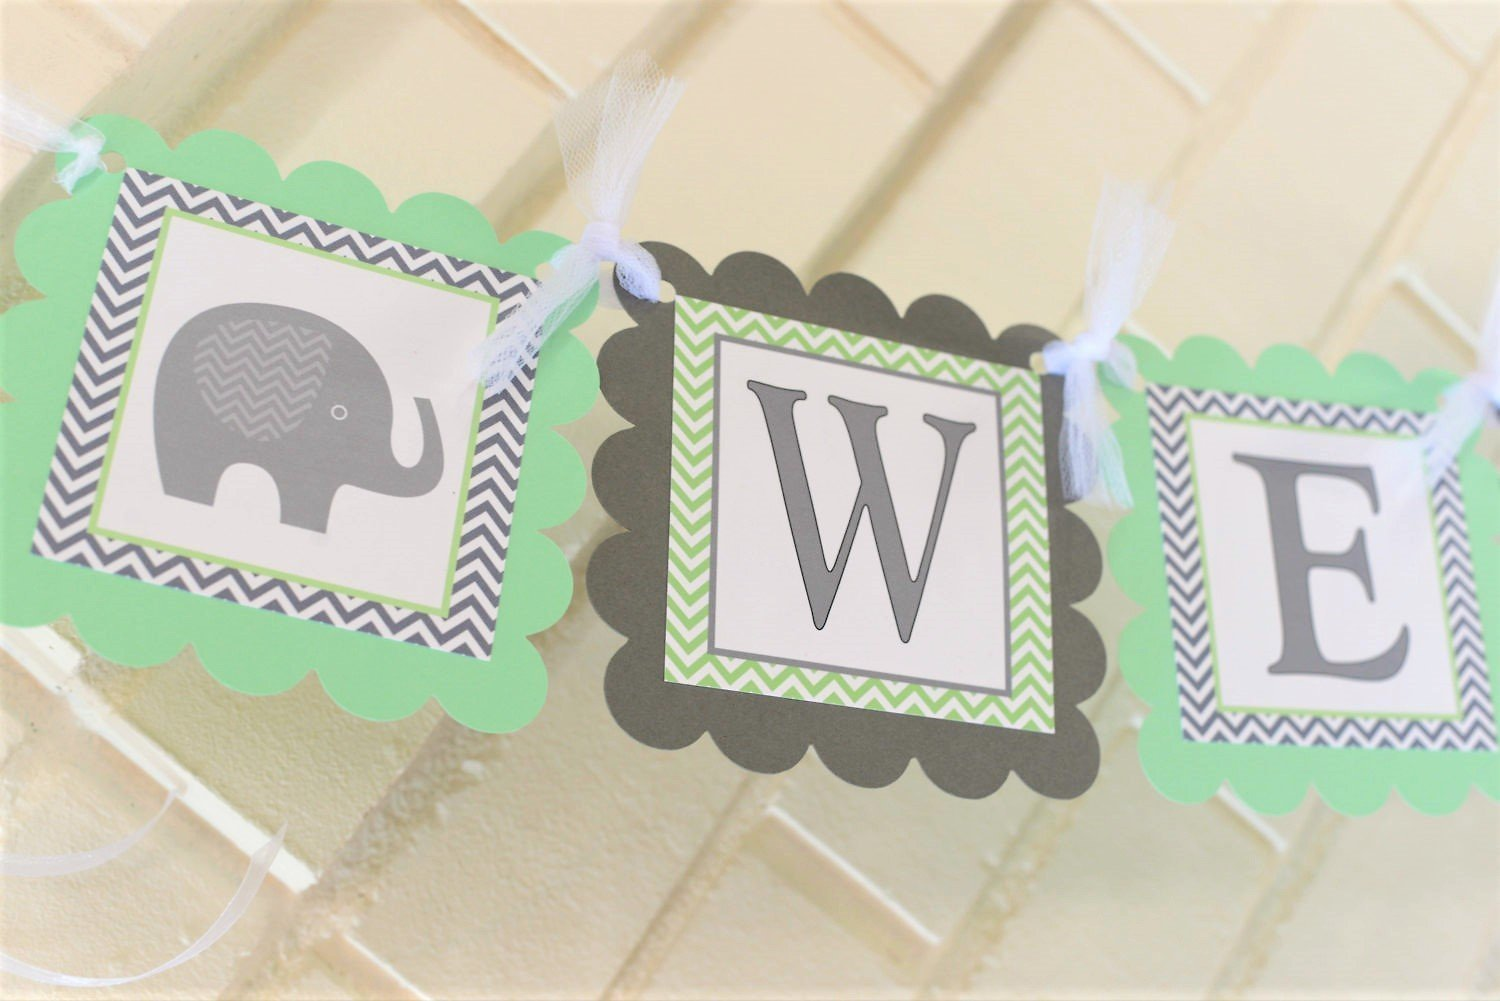 Mint and Gray Welcome Baby Elephant Baby Shower Banner, Customizable  Welcome Baby Elephant theme Banner in Mint Green and Grey, Elephant Baby  Shower ...